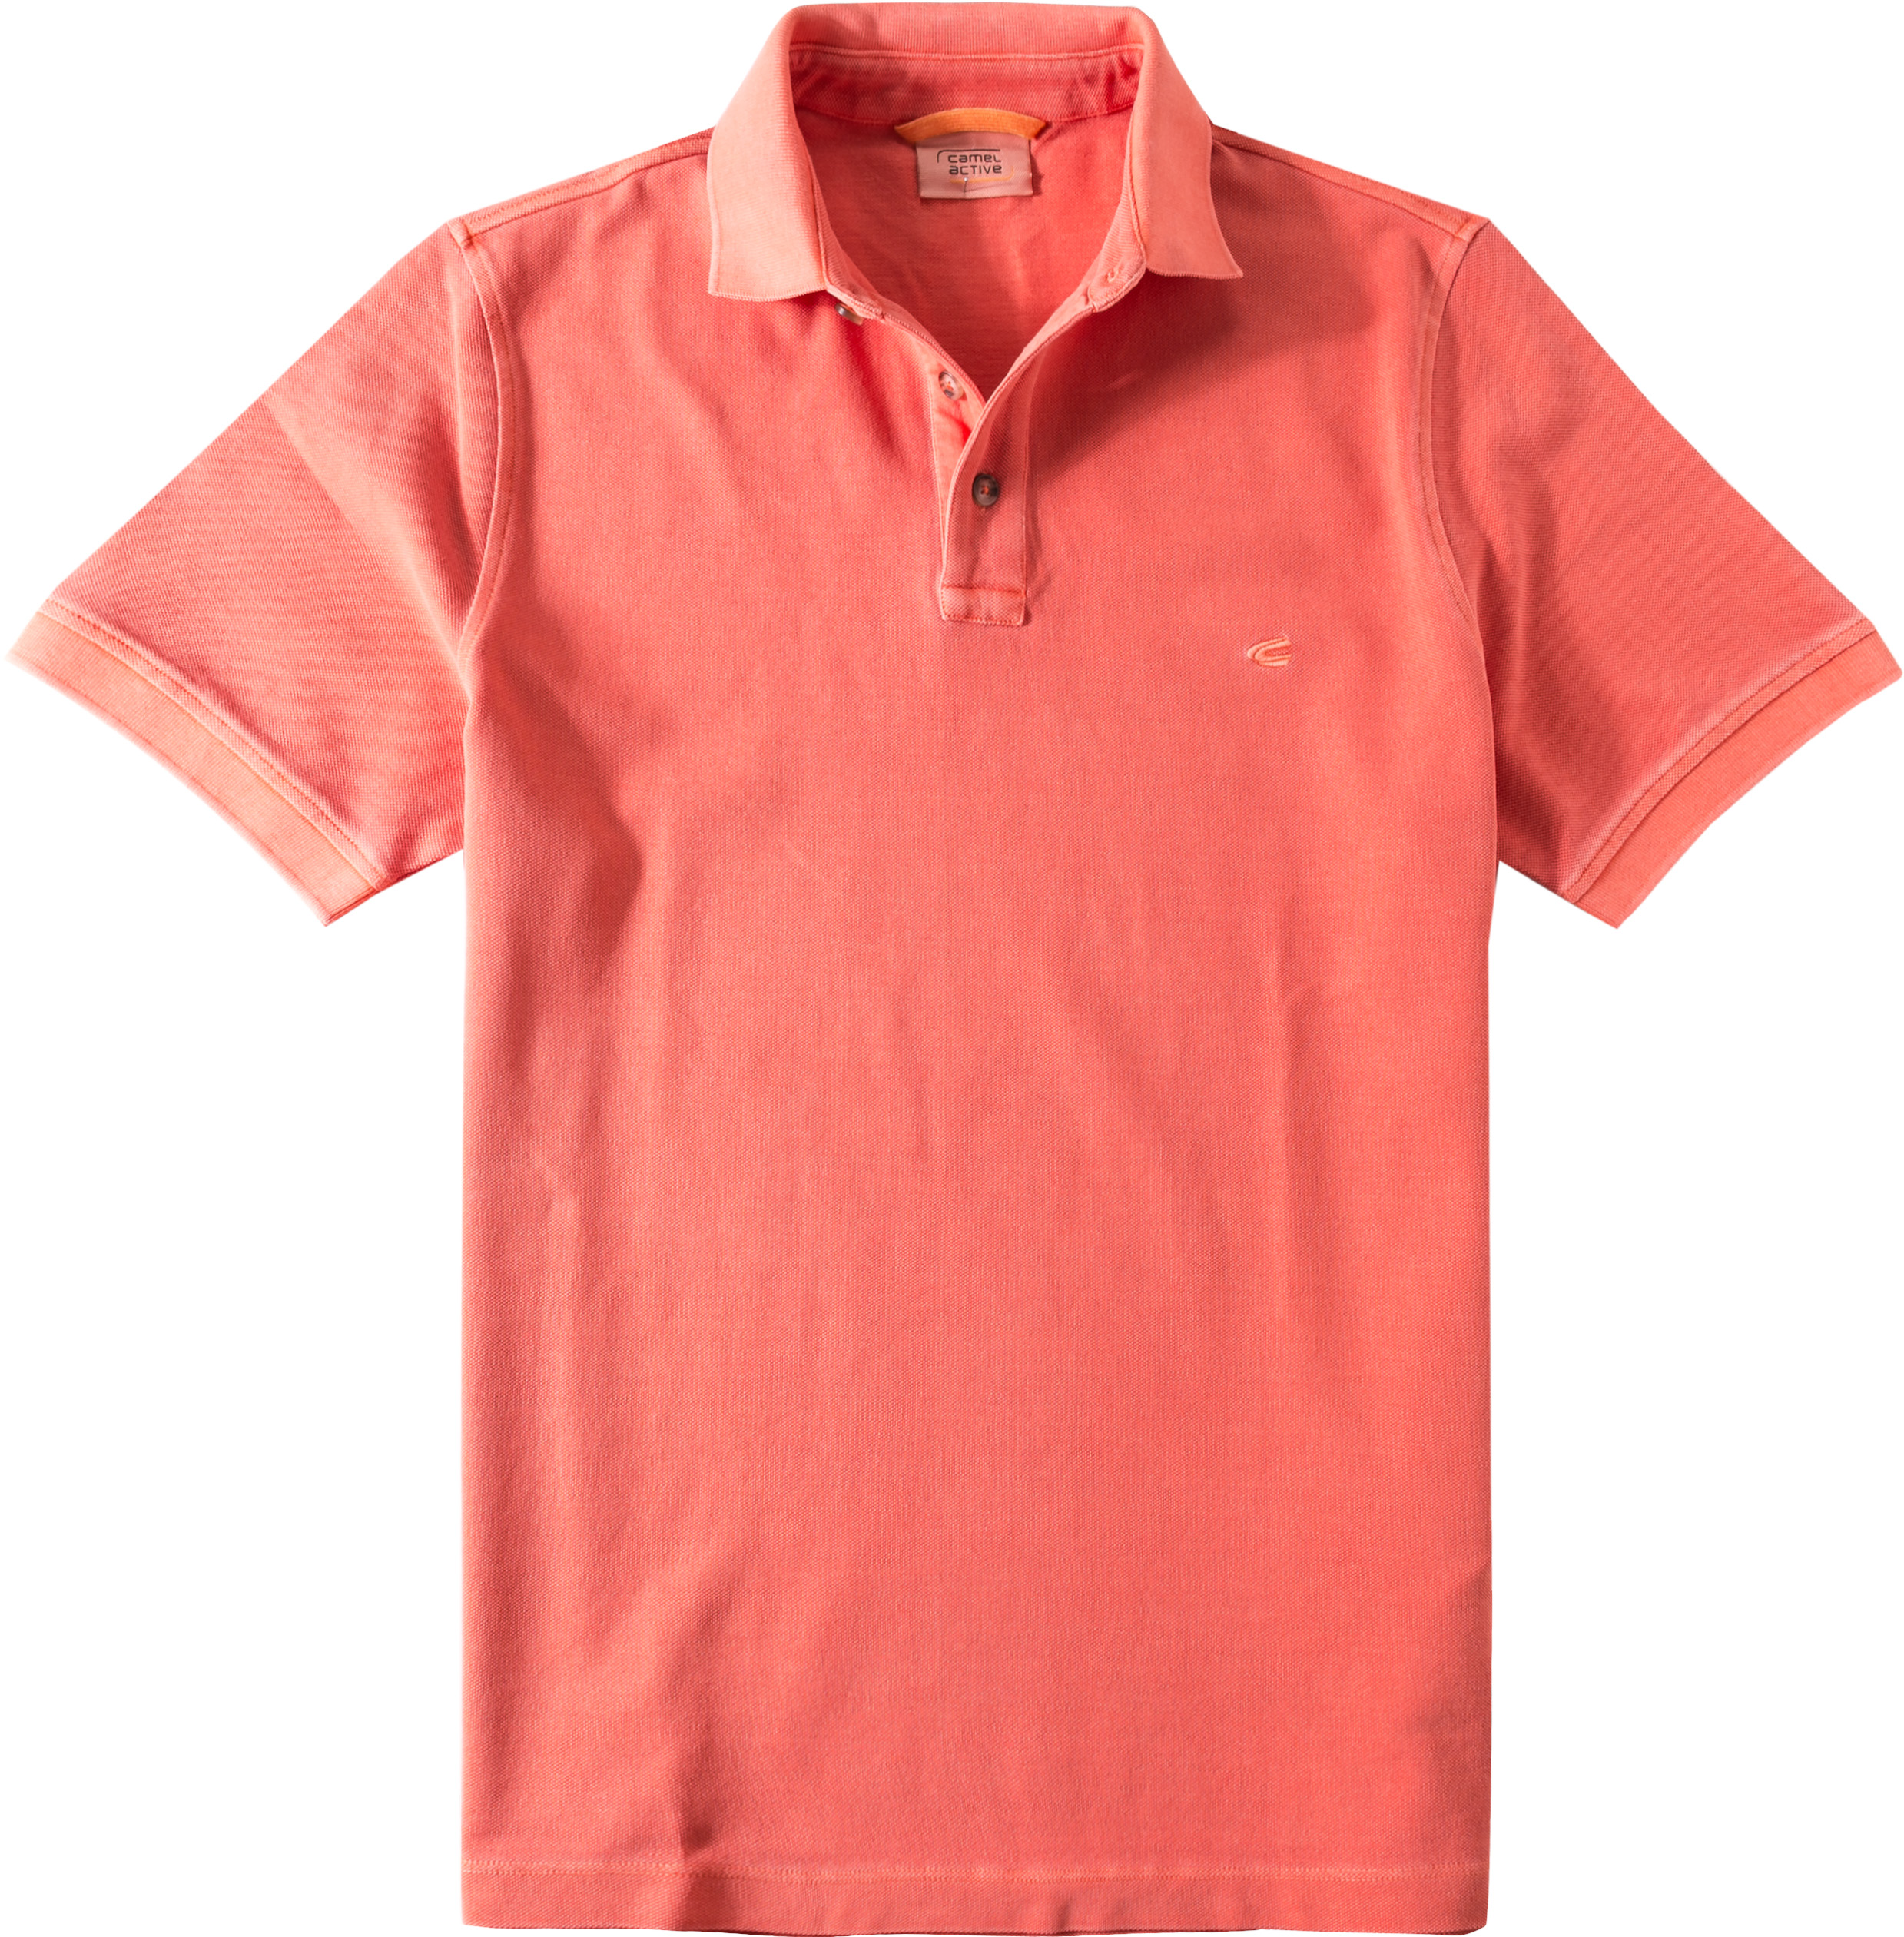 camel active Polo-Shirt 368056/40